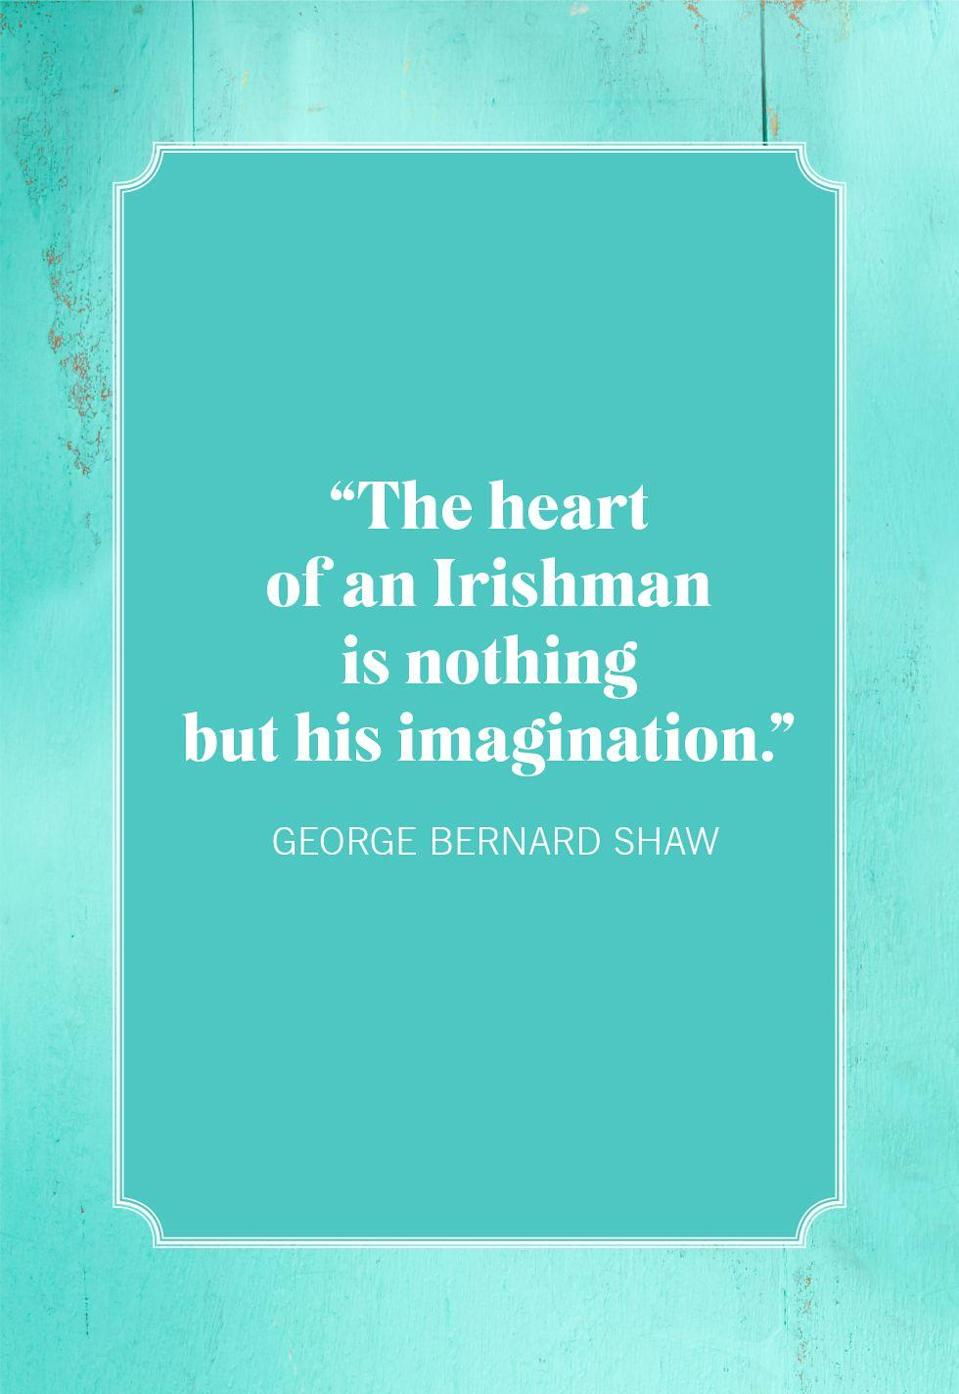 "<p>""The heart of an Irishman is nothing but his imagination.""</p>"